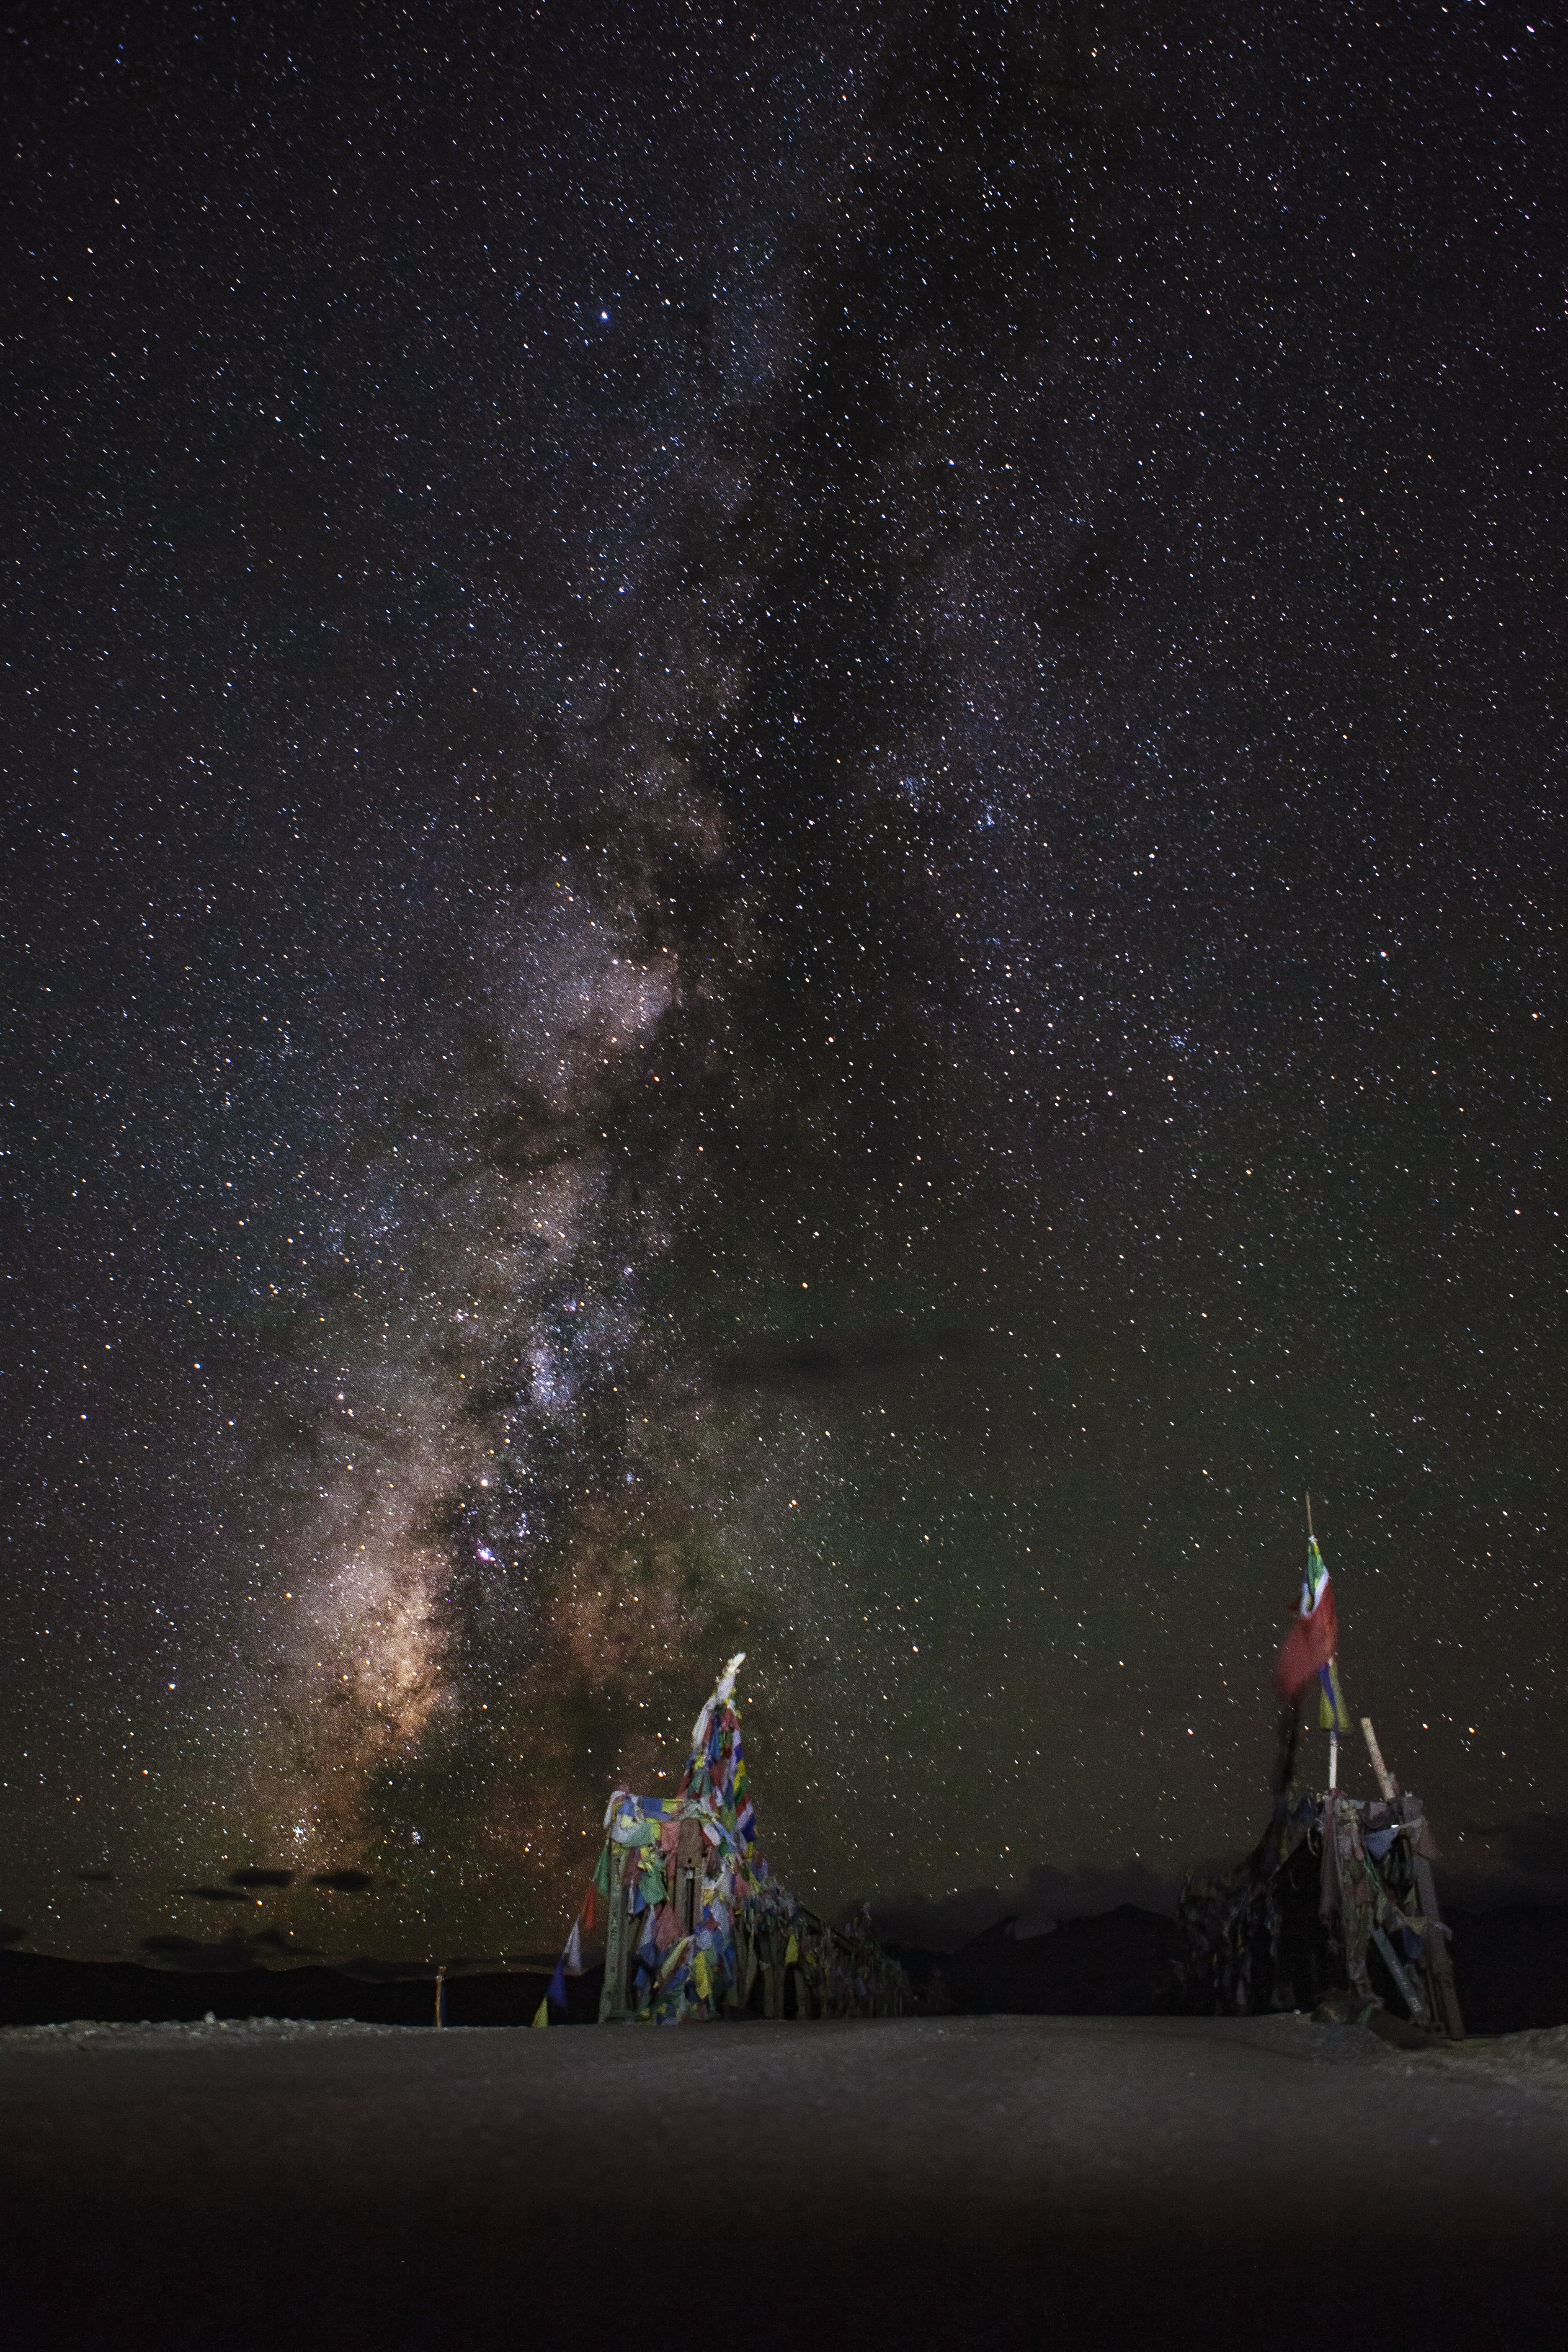 Captured during Astrophotography trip to Ladakh 2018.